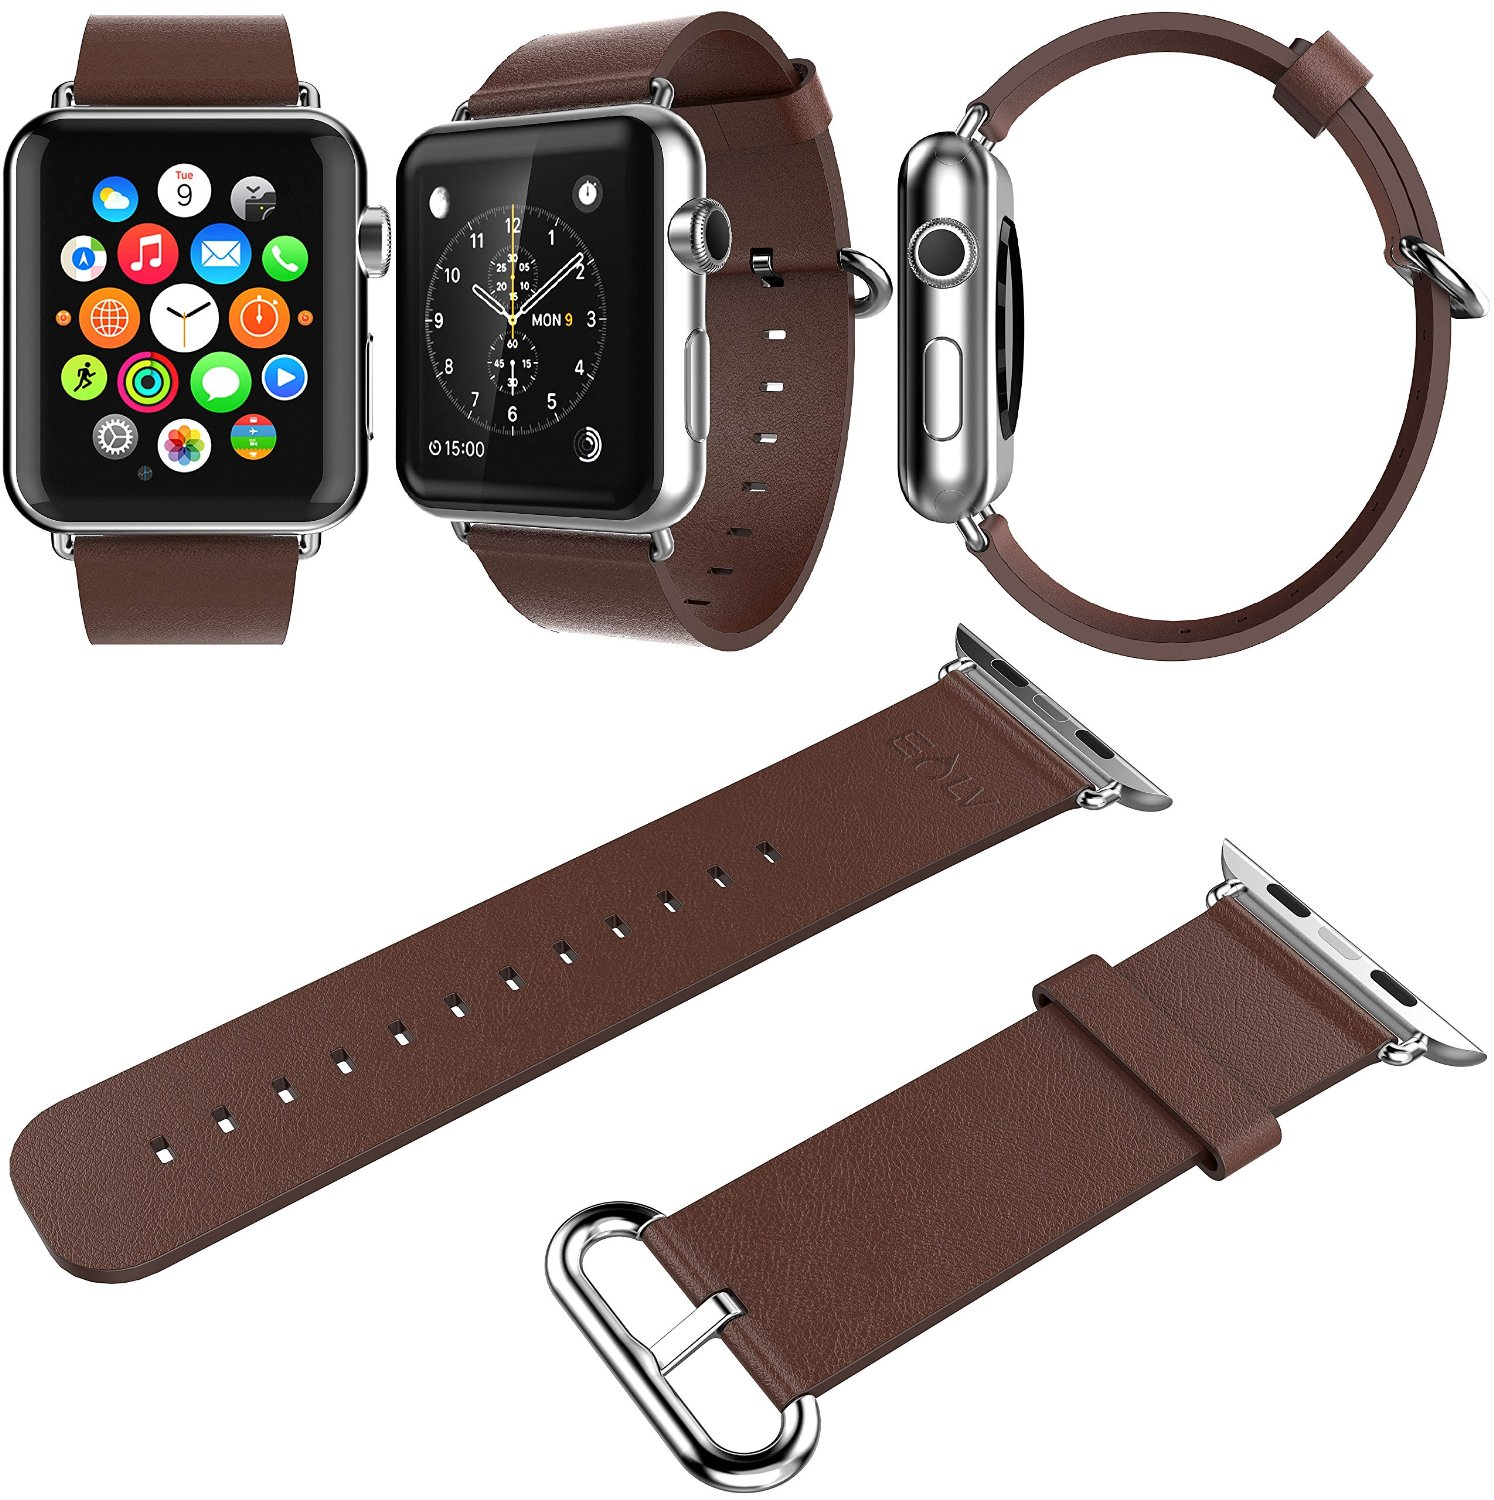 apple watch accessories, apple watch strap, apple watch bands